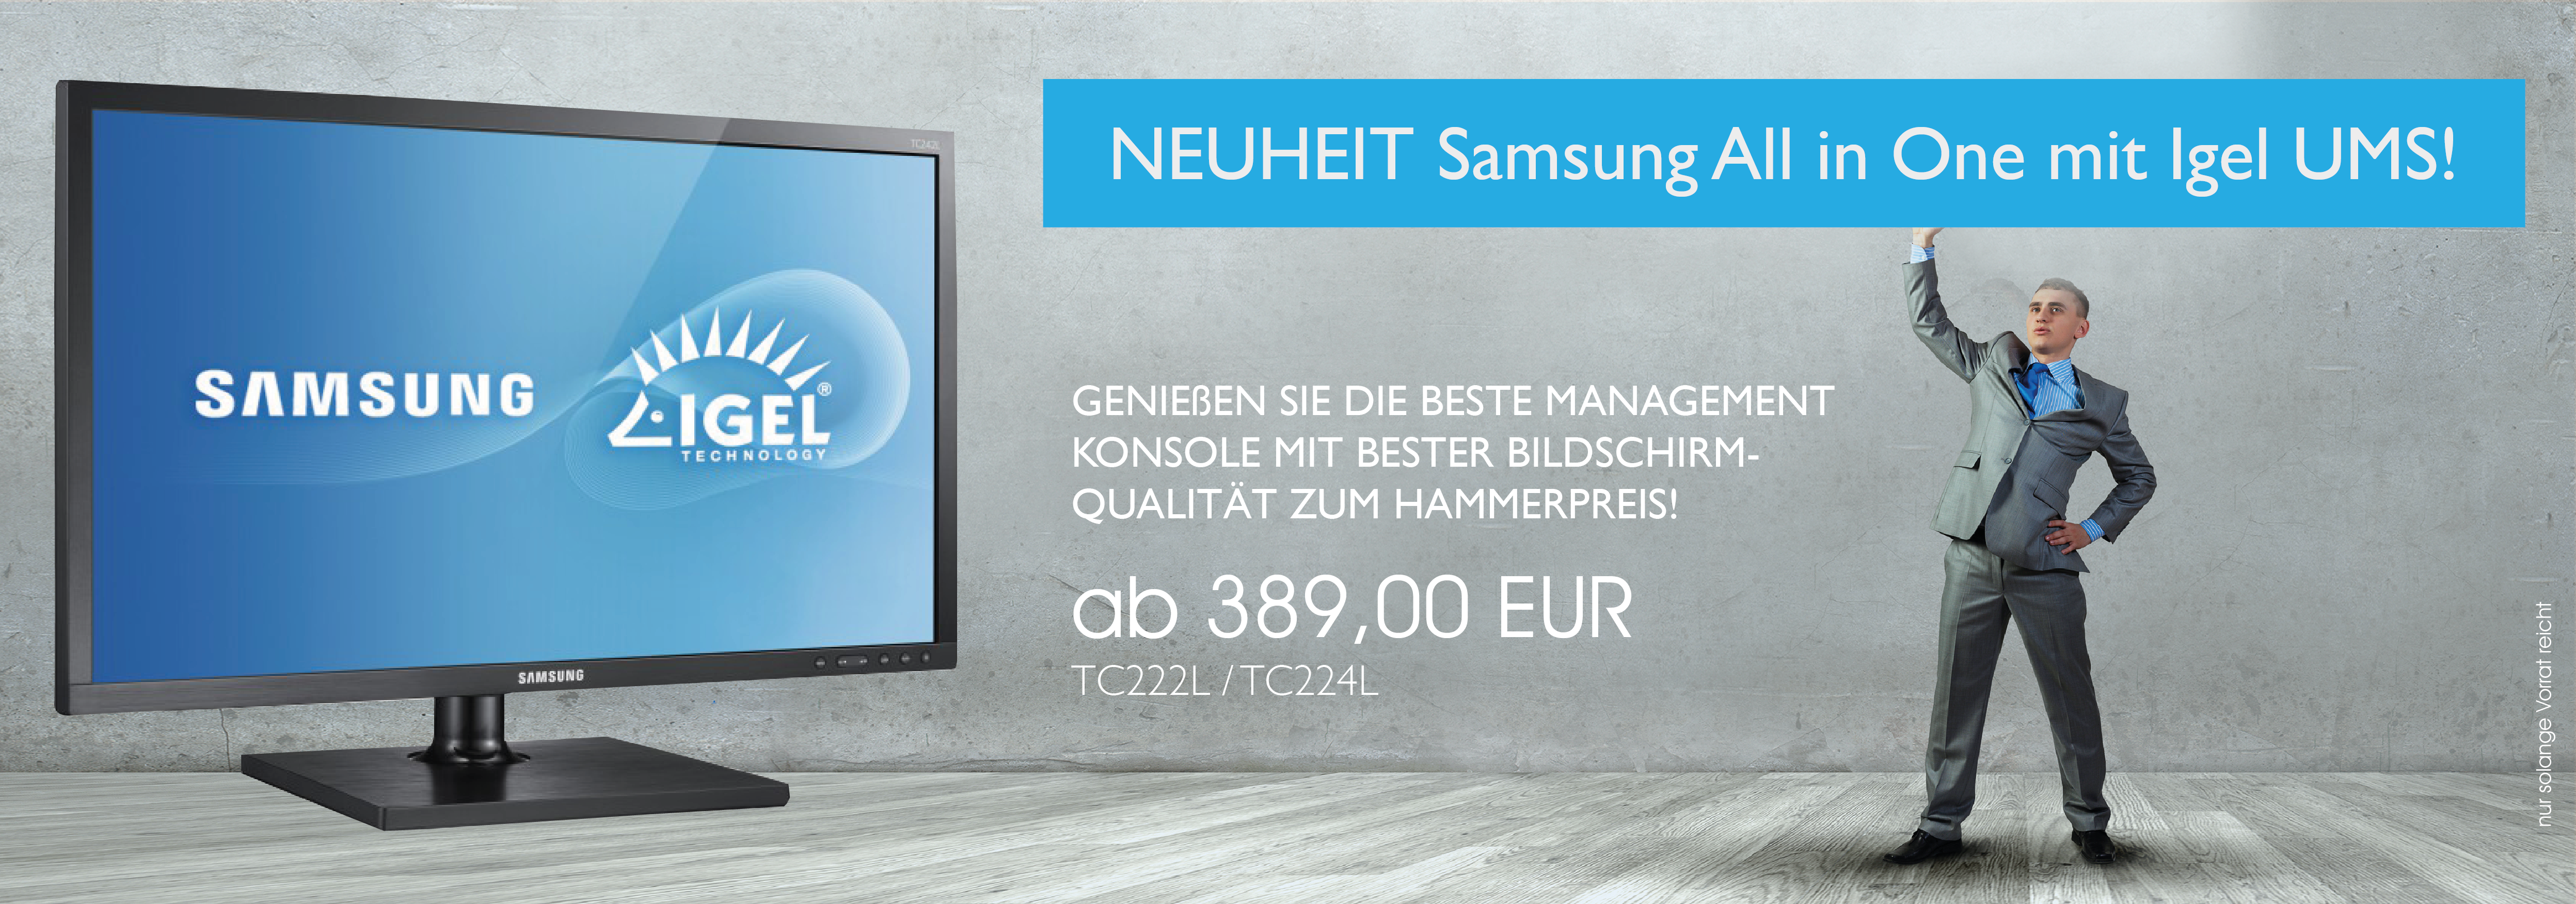 Samsung-Linux- All-in-One